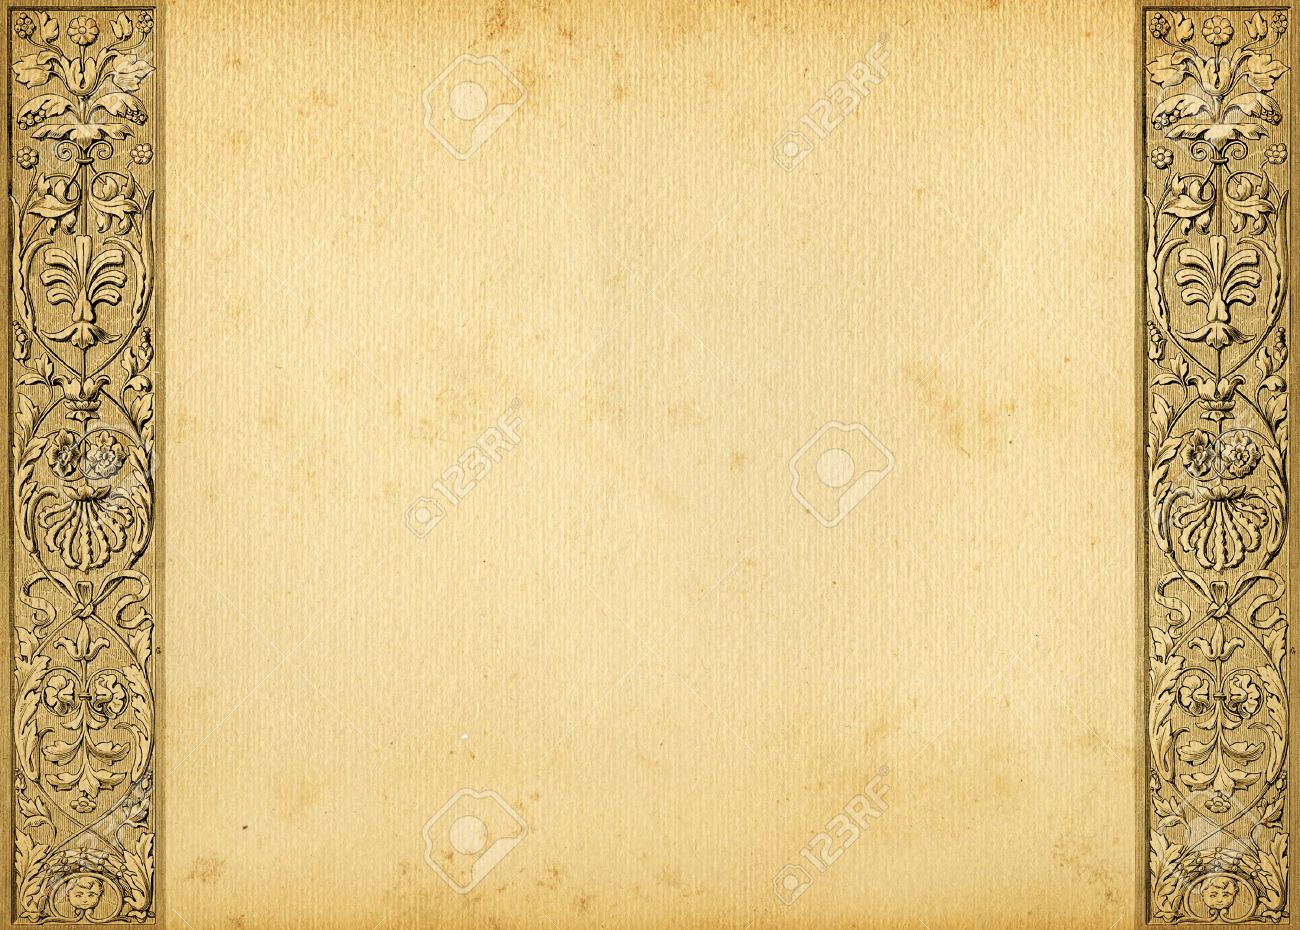 Renaissance Background 2 Stock Photo Picture And Royalty 1300x930